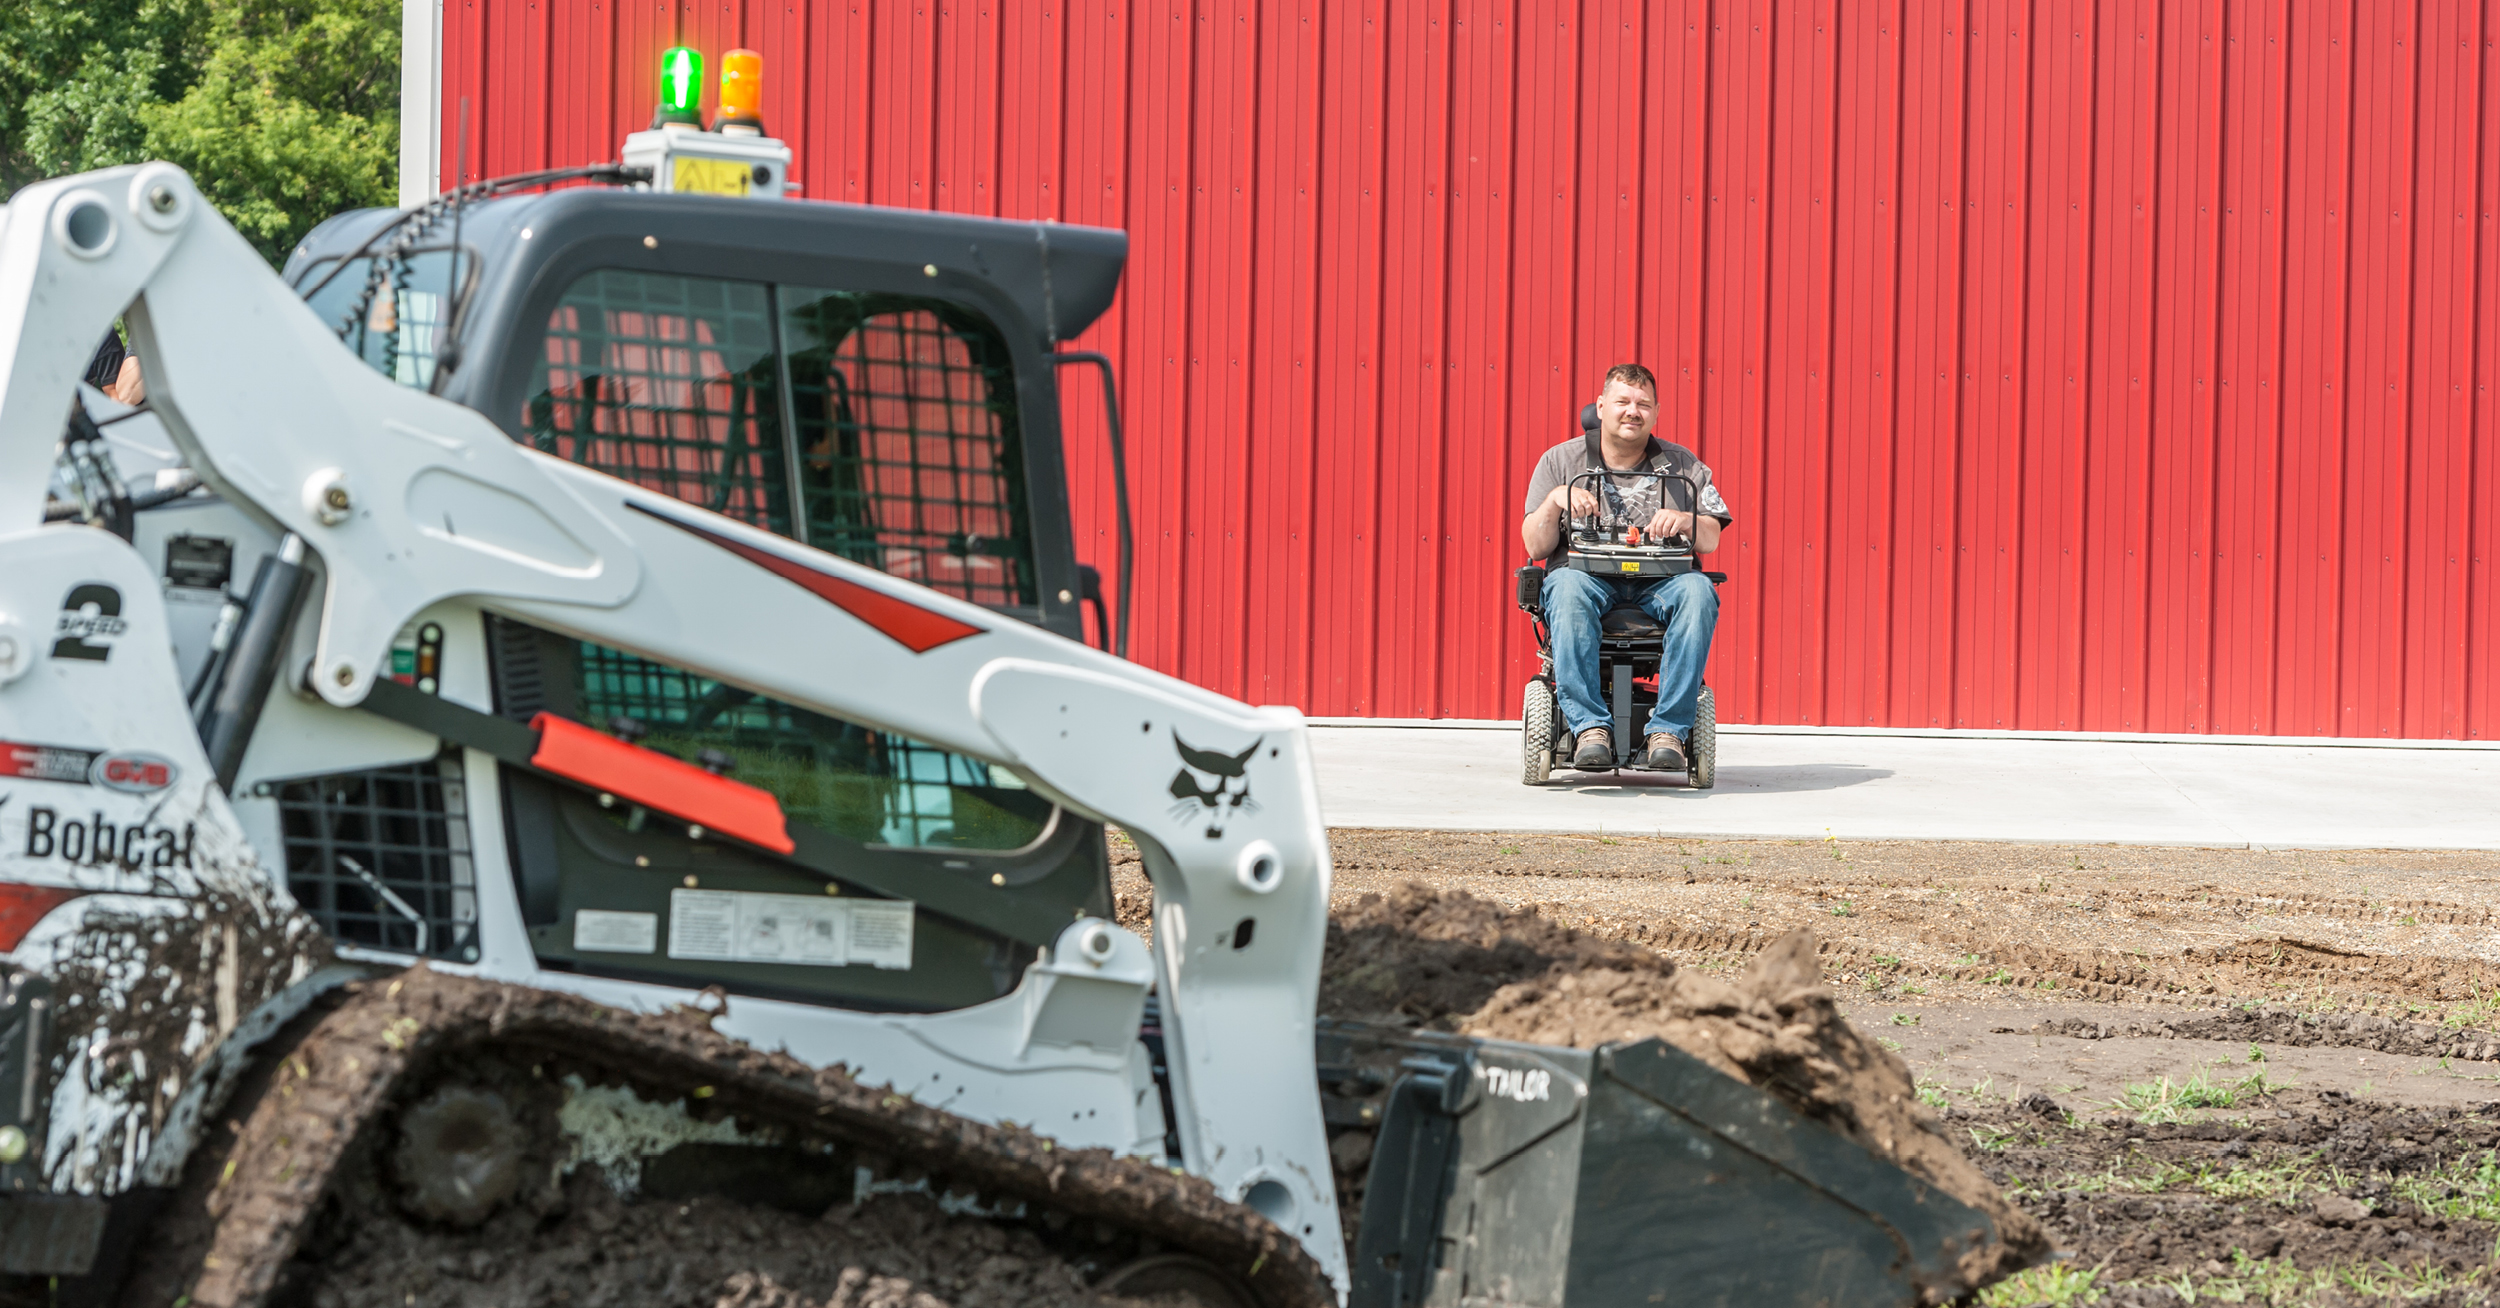 Bobcat Equipment Helps Quadriplegic Man Regain Independence | Bobcat